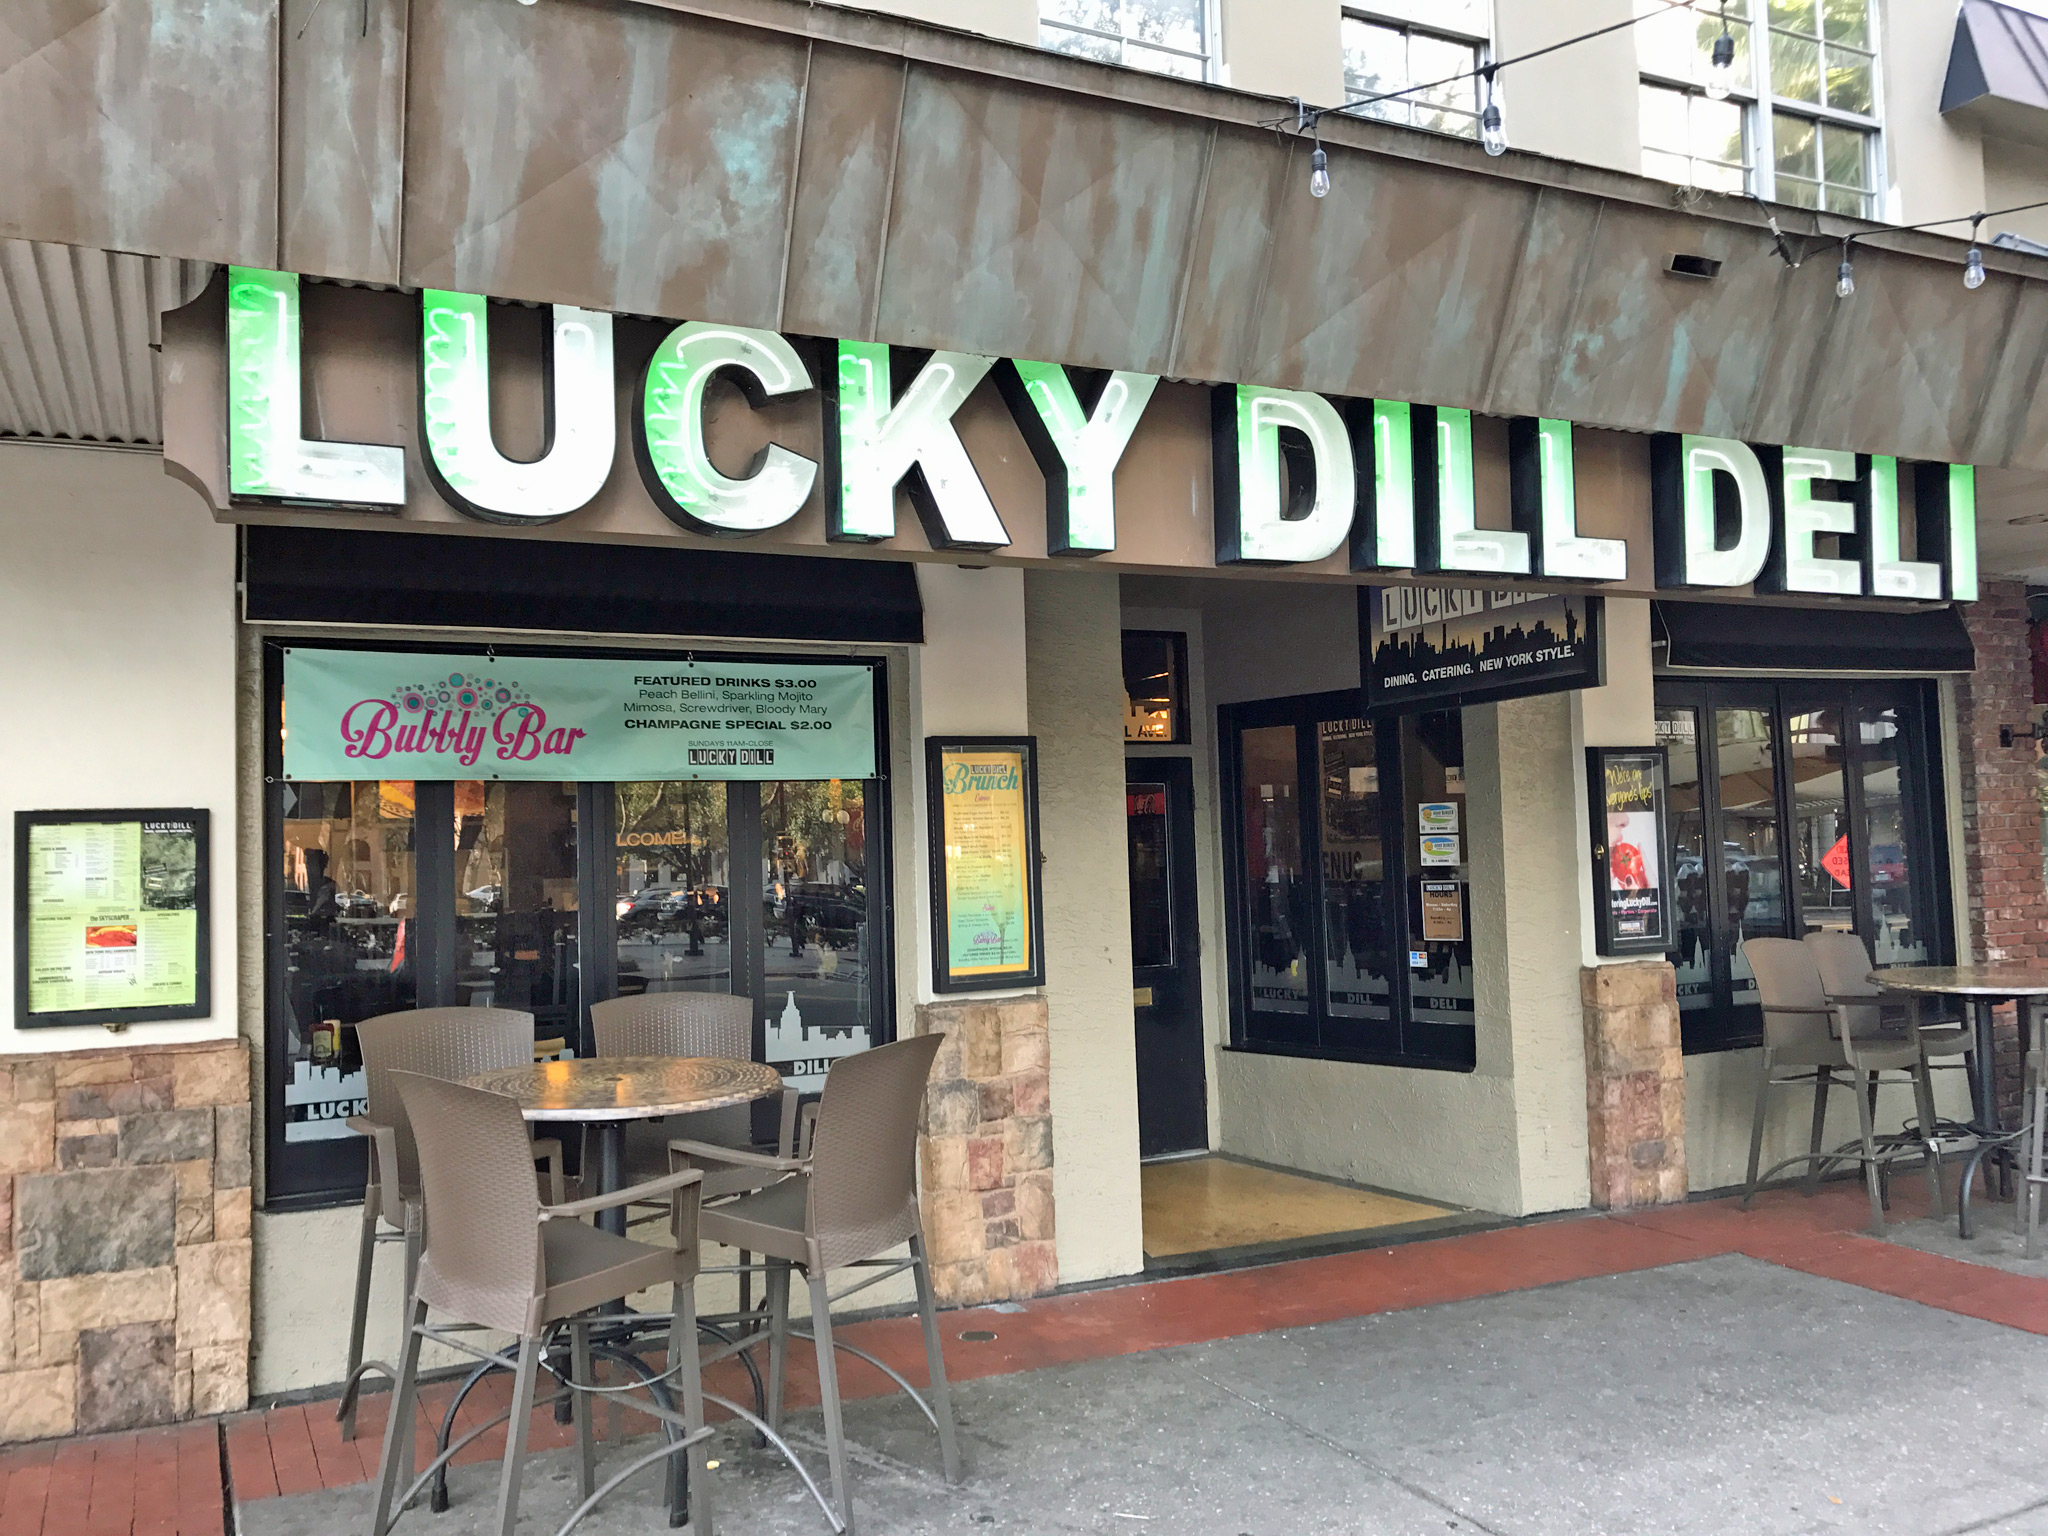 Lucky Dill Deli on Central Ave Sold to Owner of Oyster Bar & Fortunato's